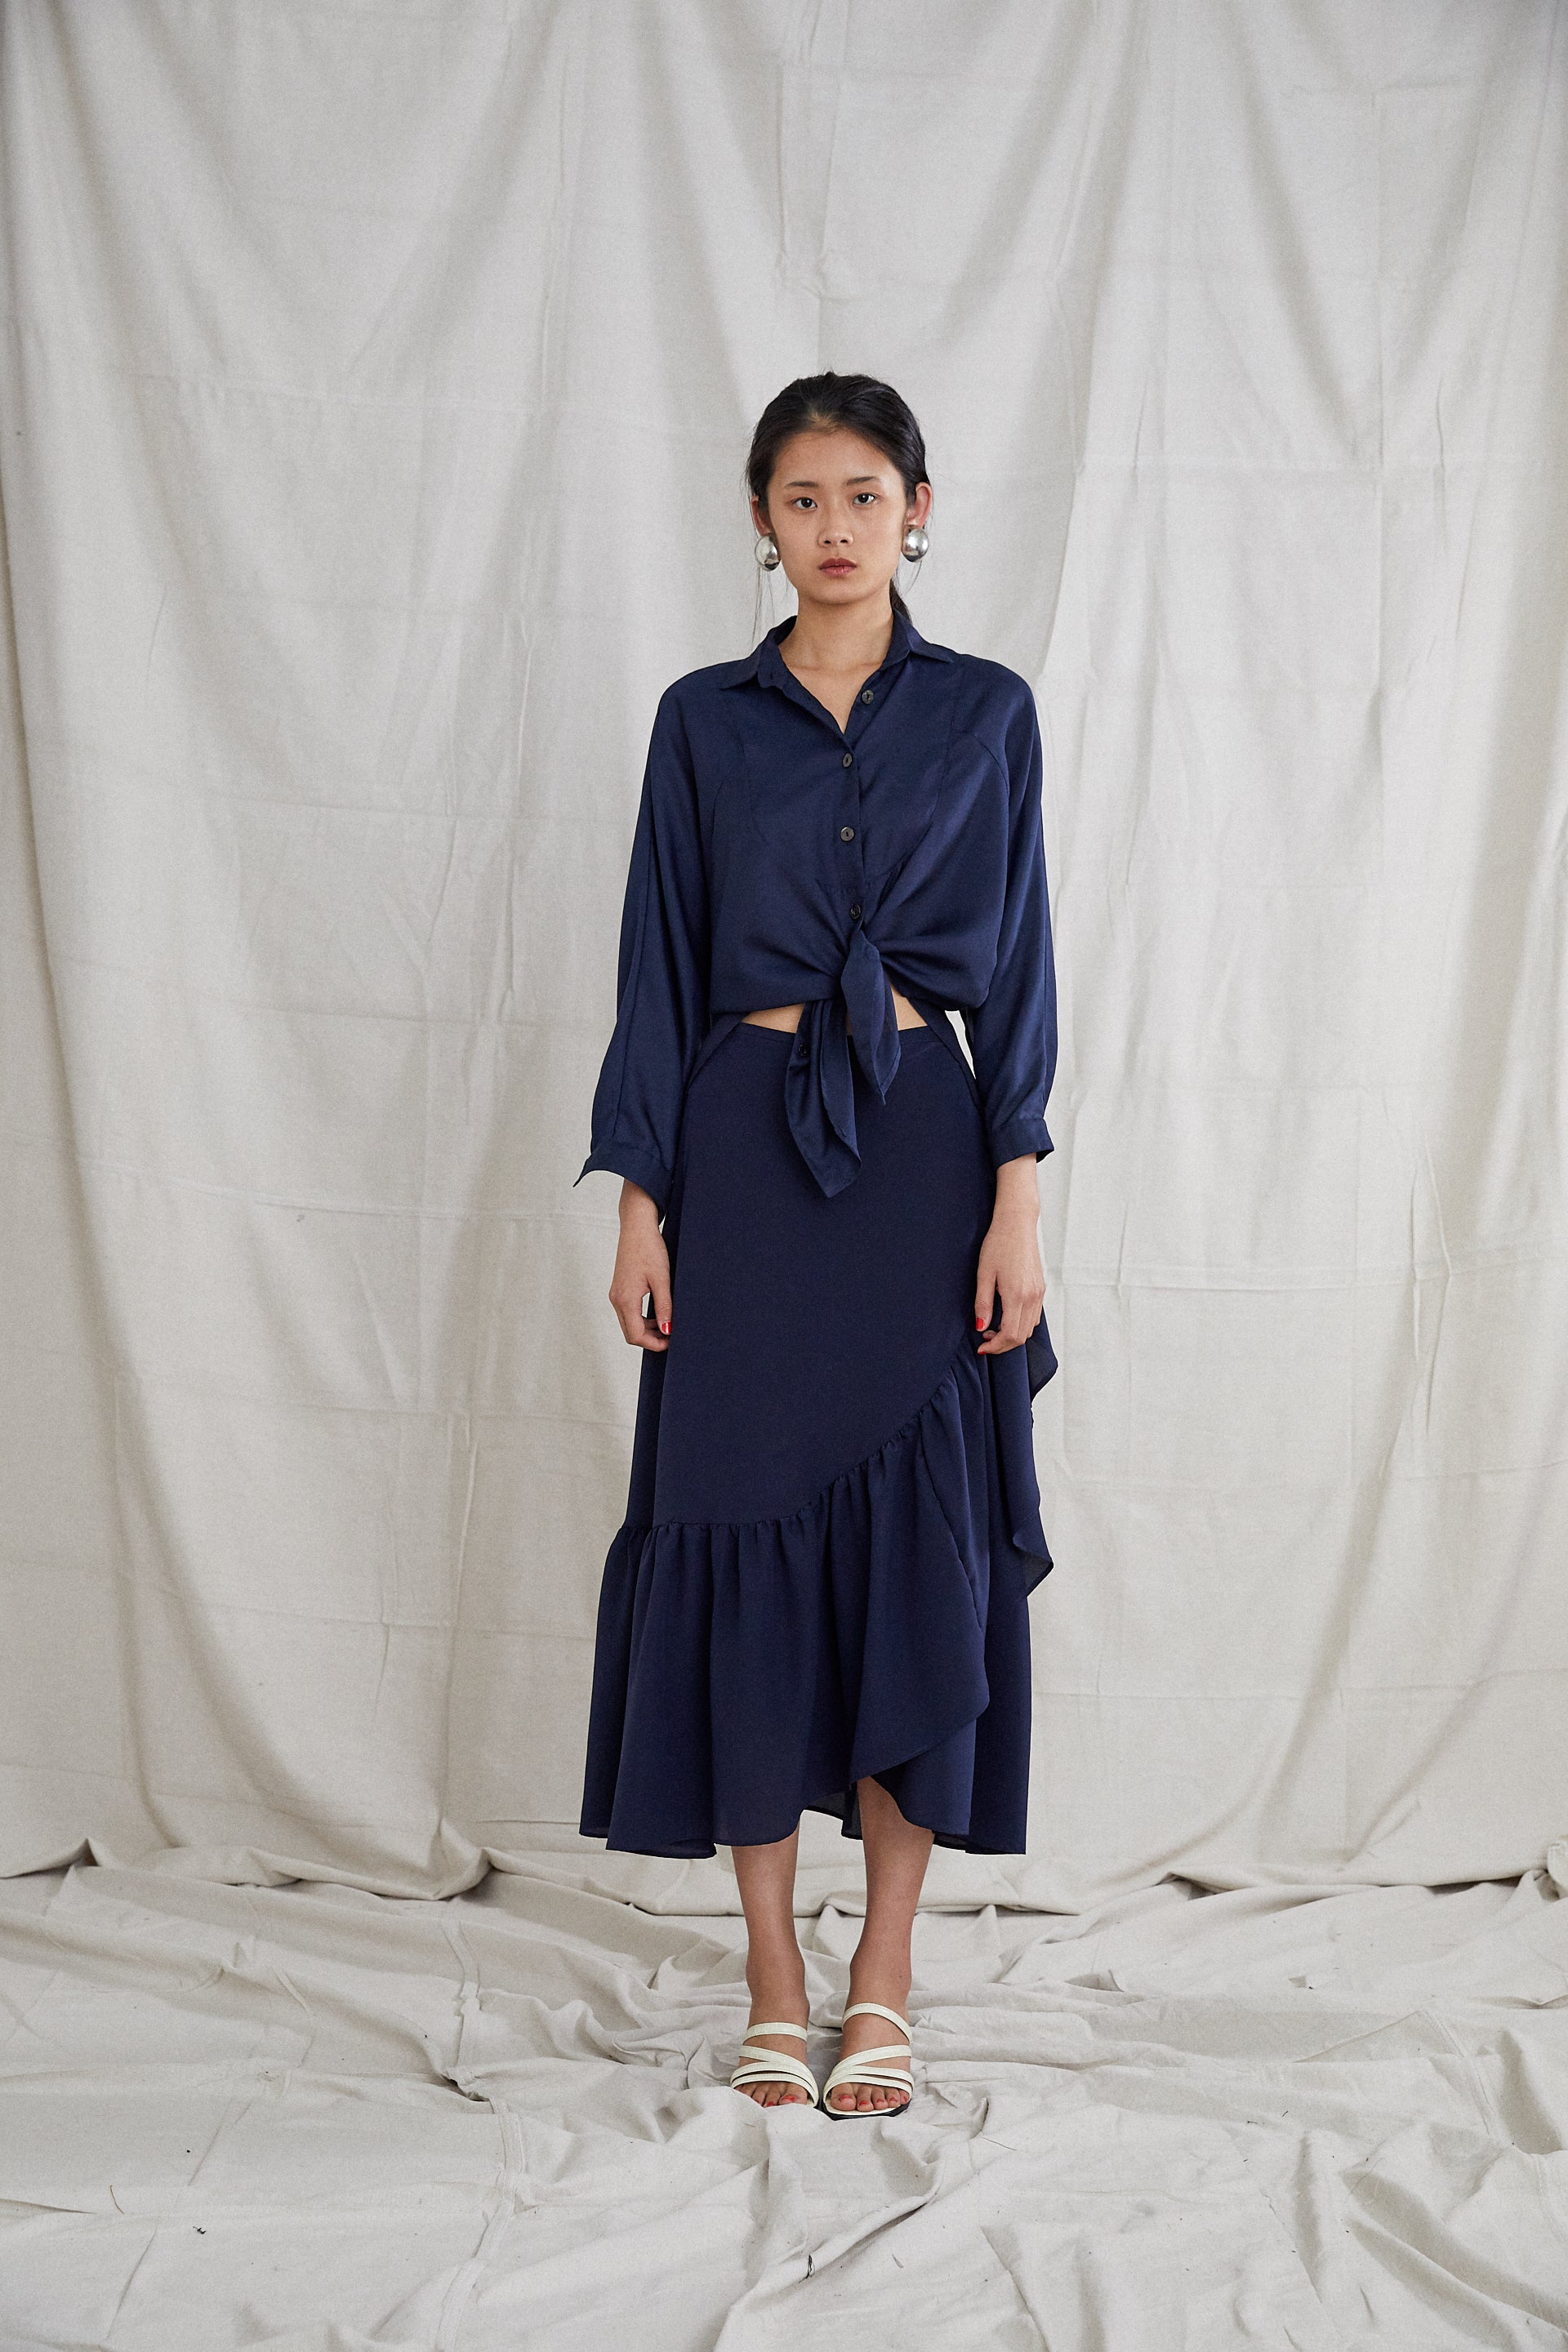 Etka Skirt - Indigo Silk